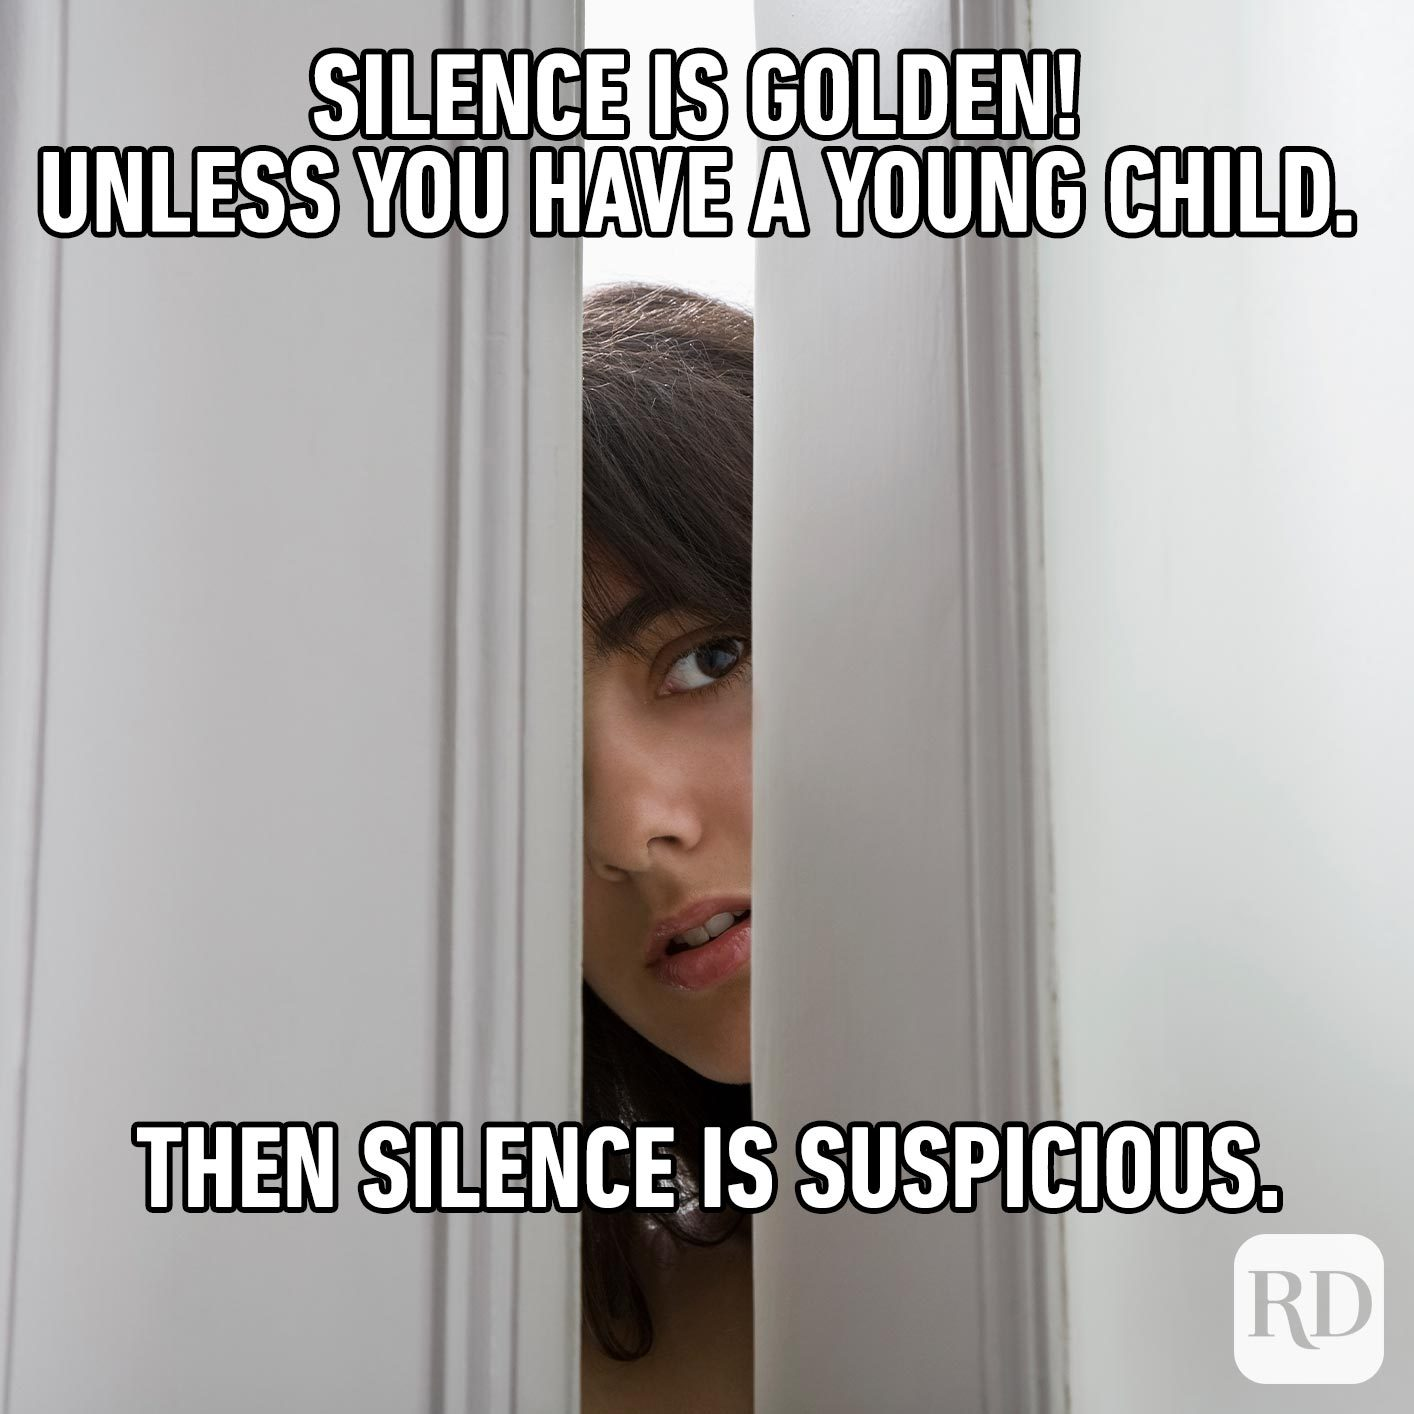 Mother peeking around corner of dark door. MEME TEXT: Silence is golden! Unless you have a young child. Then silence is suspicious.